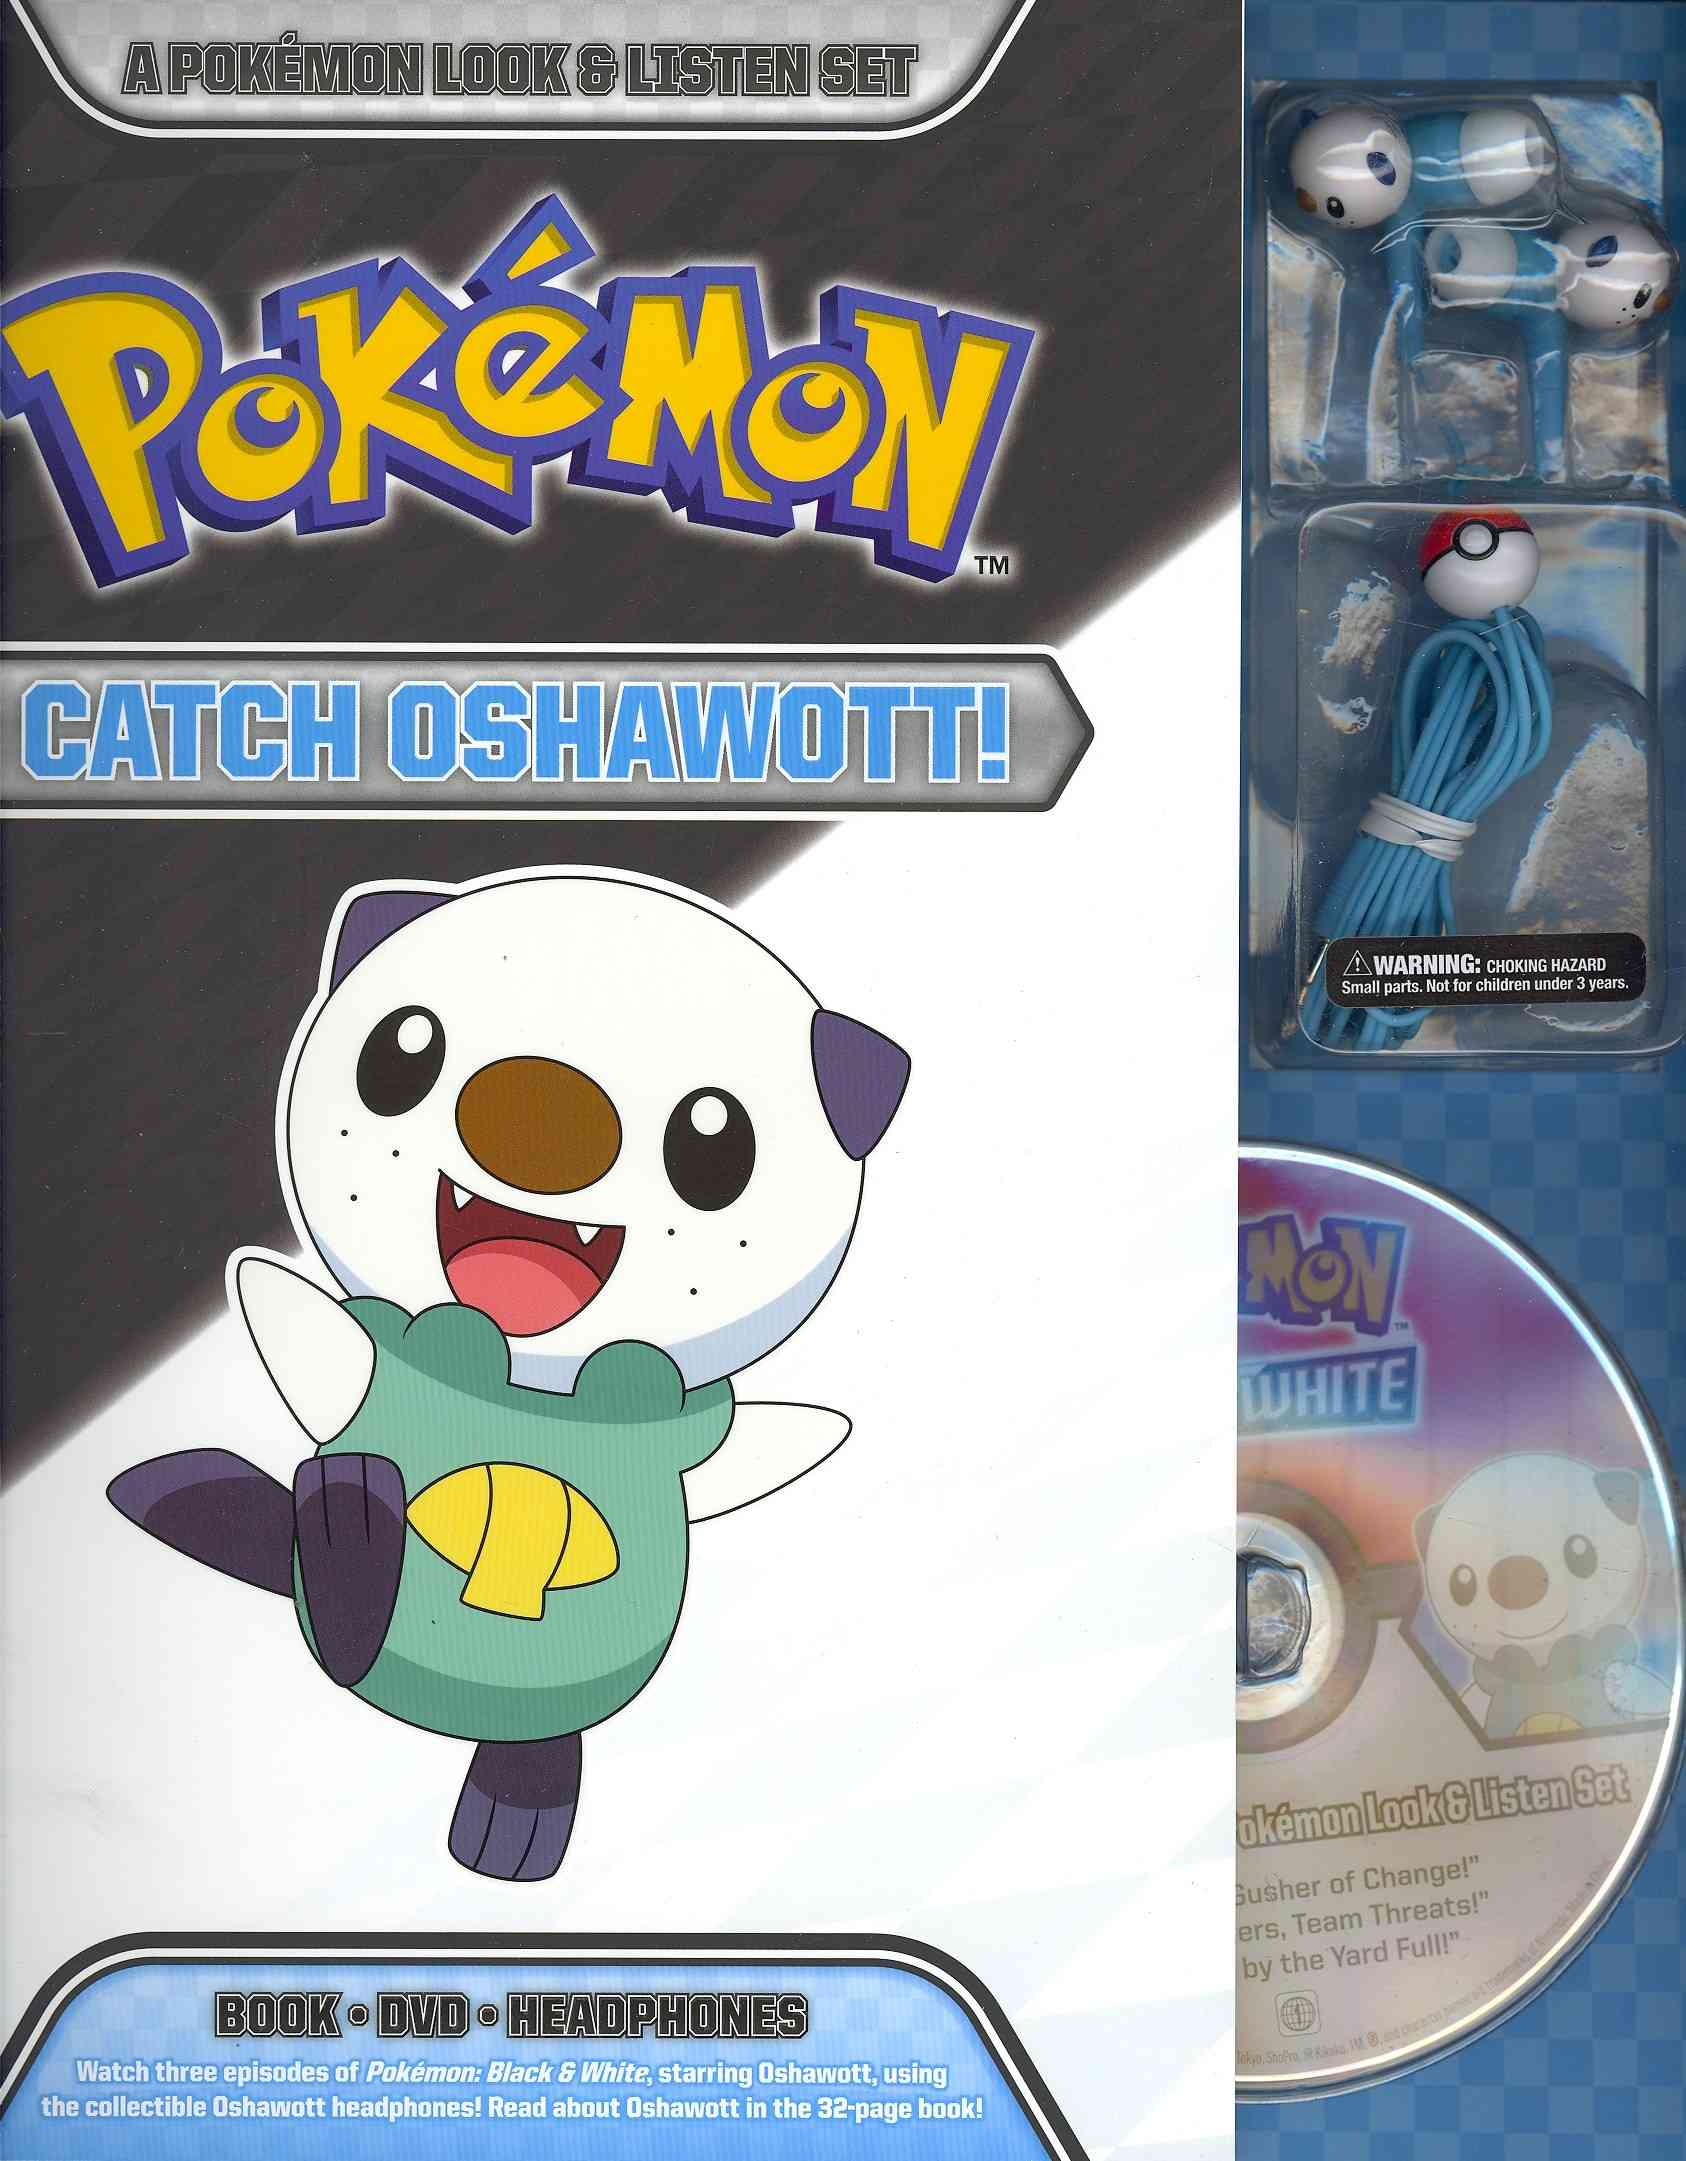 Catch Oshawott!